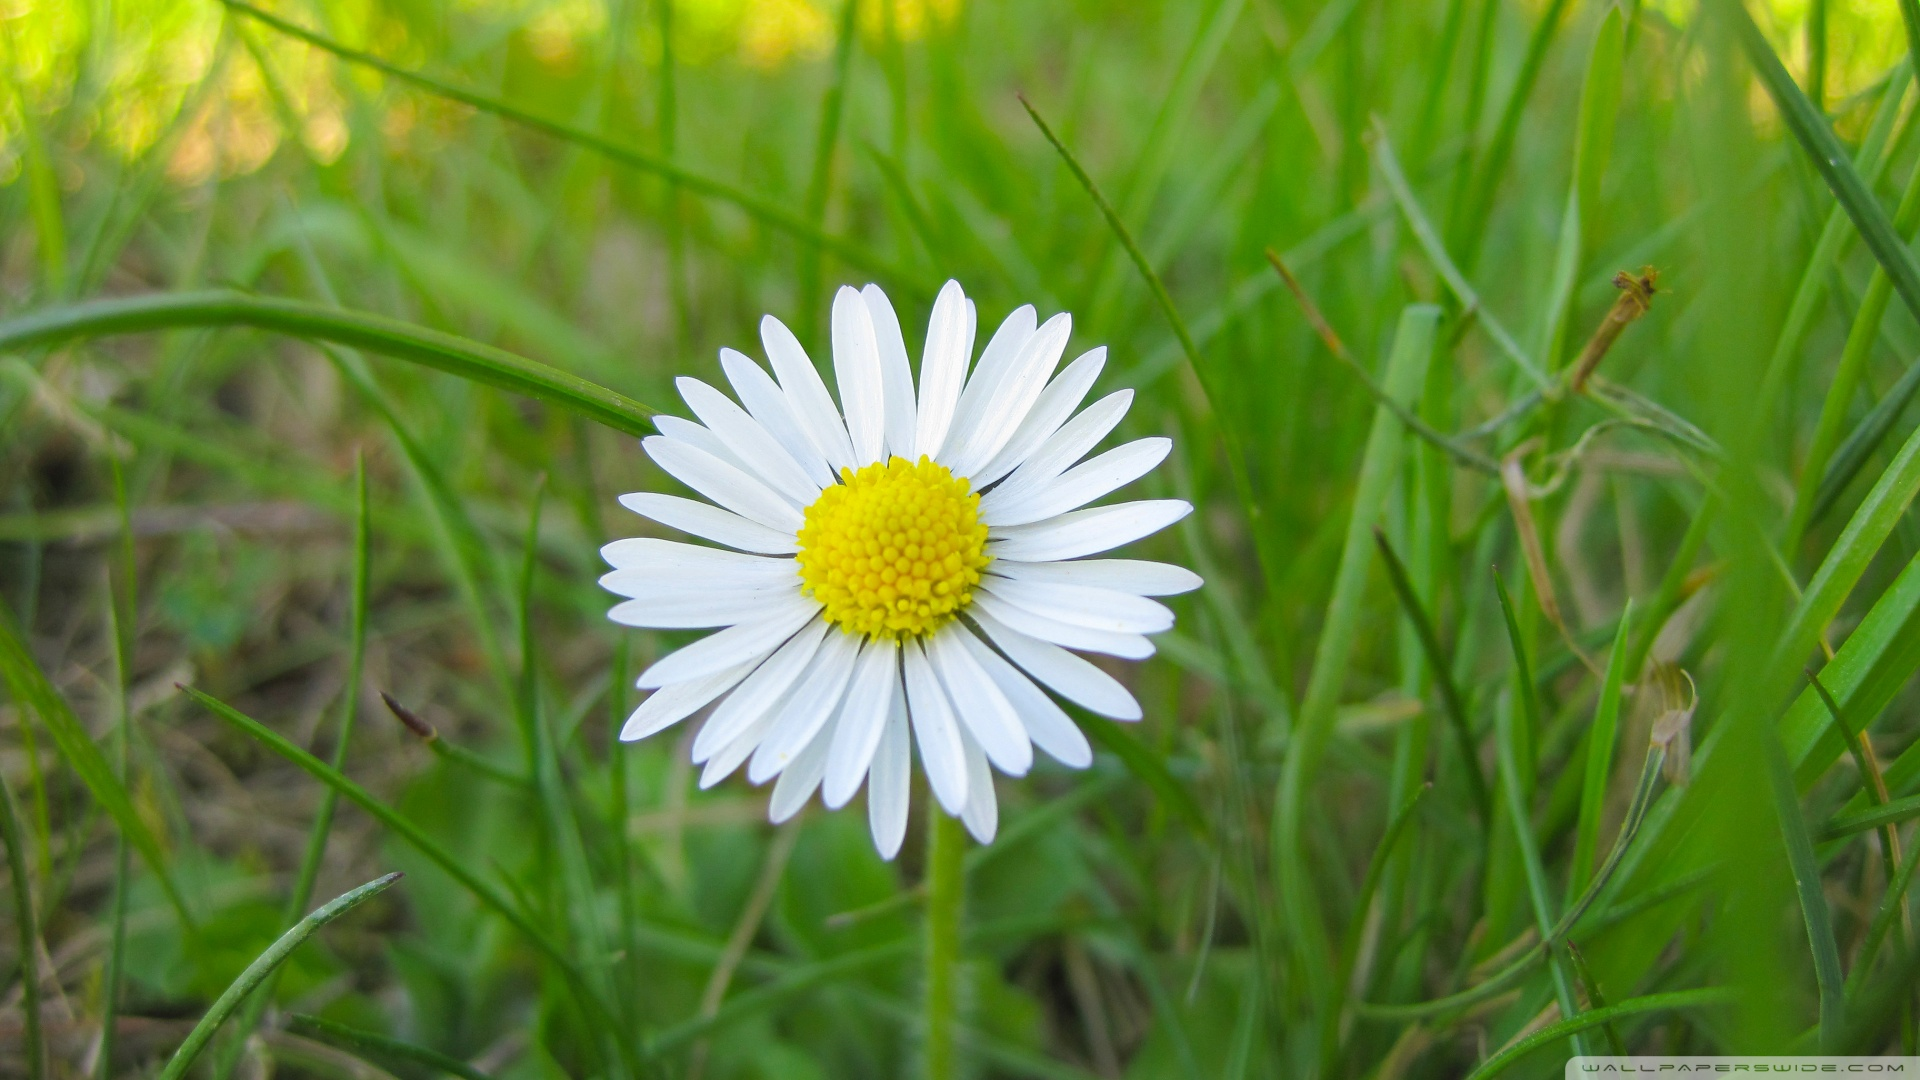 White Flowers In Grass 16 Background Hdflowerwallpaper